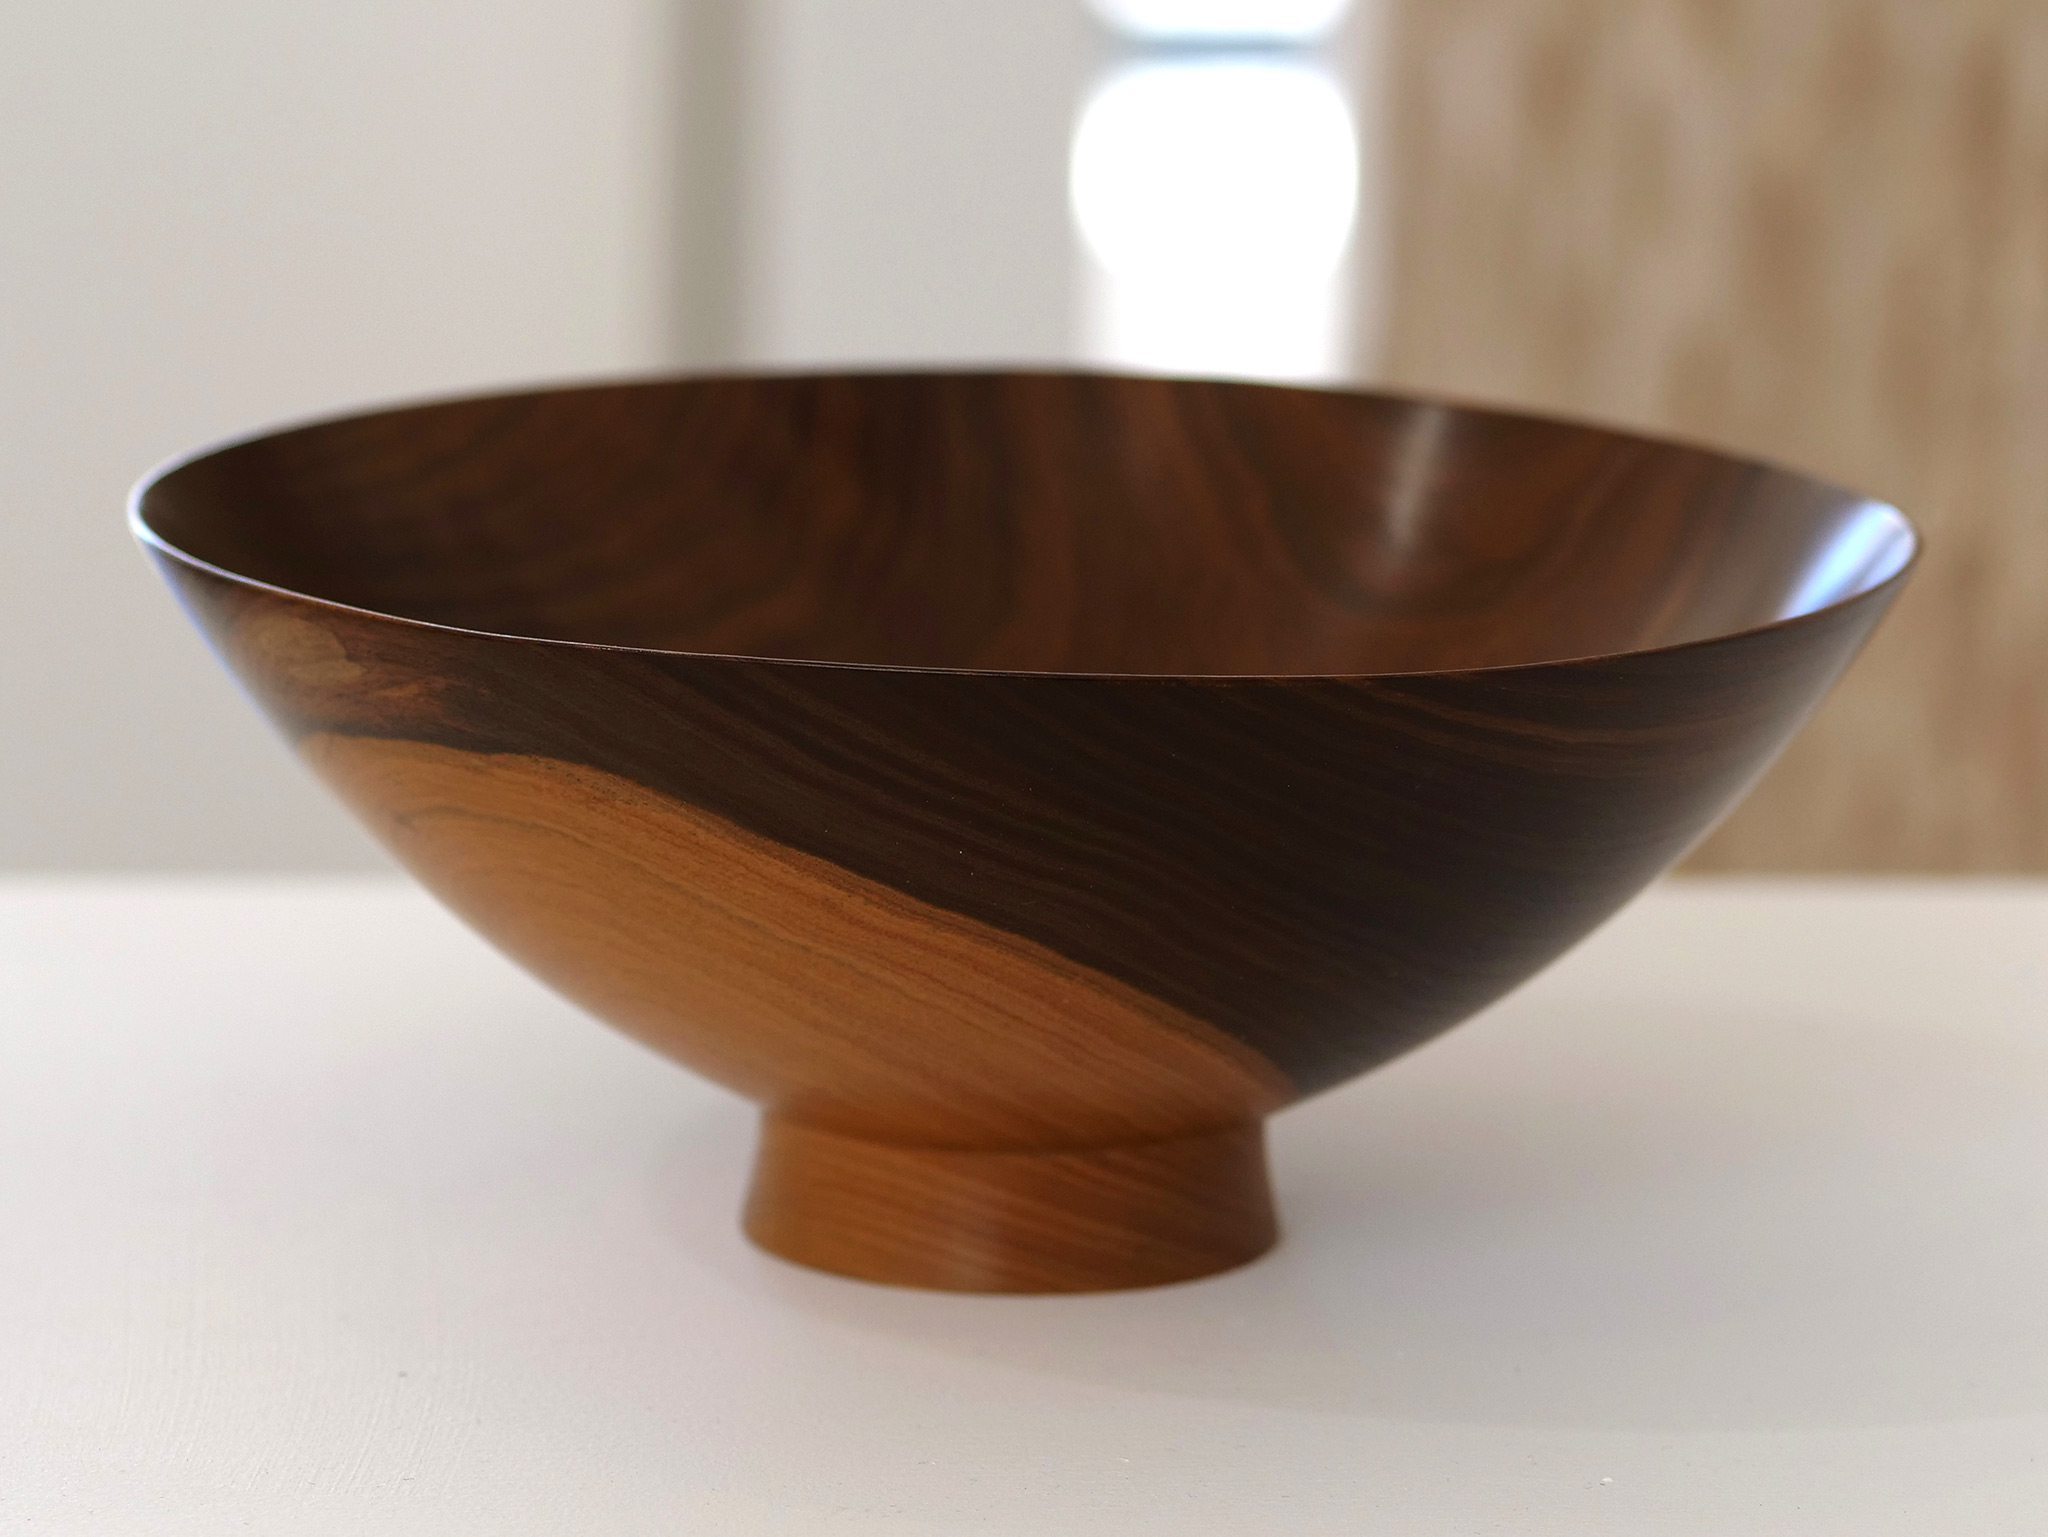 Bob Stocksdale, Bowl, Turned wood, 1974, California Visionaries: Seminal Studio Craft, Featuring Works from the Forrest L. Merrill Collection